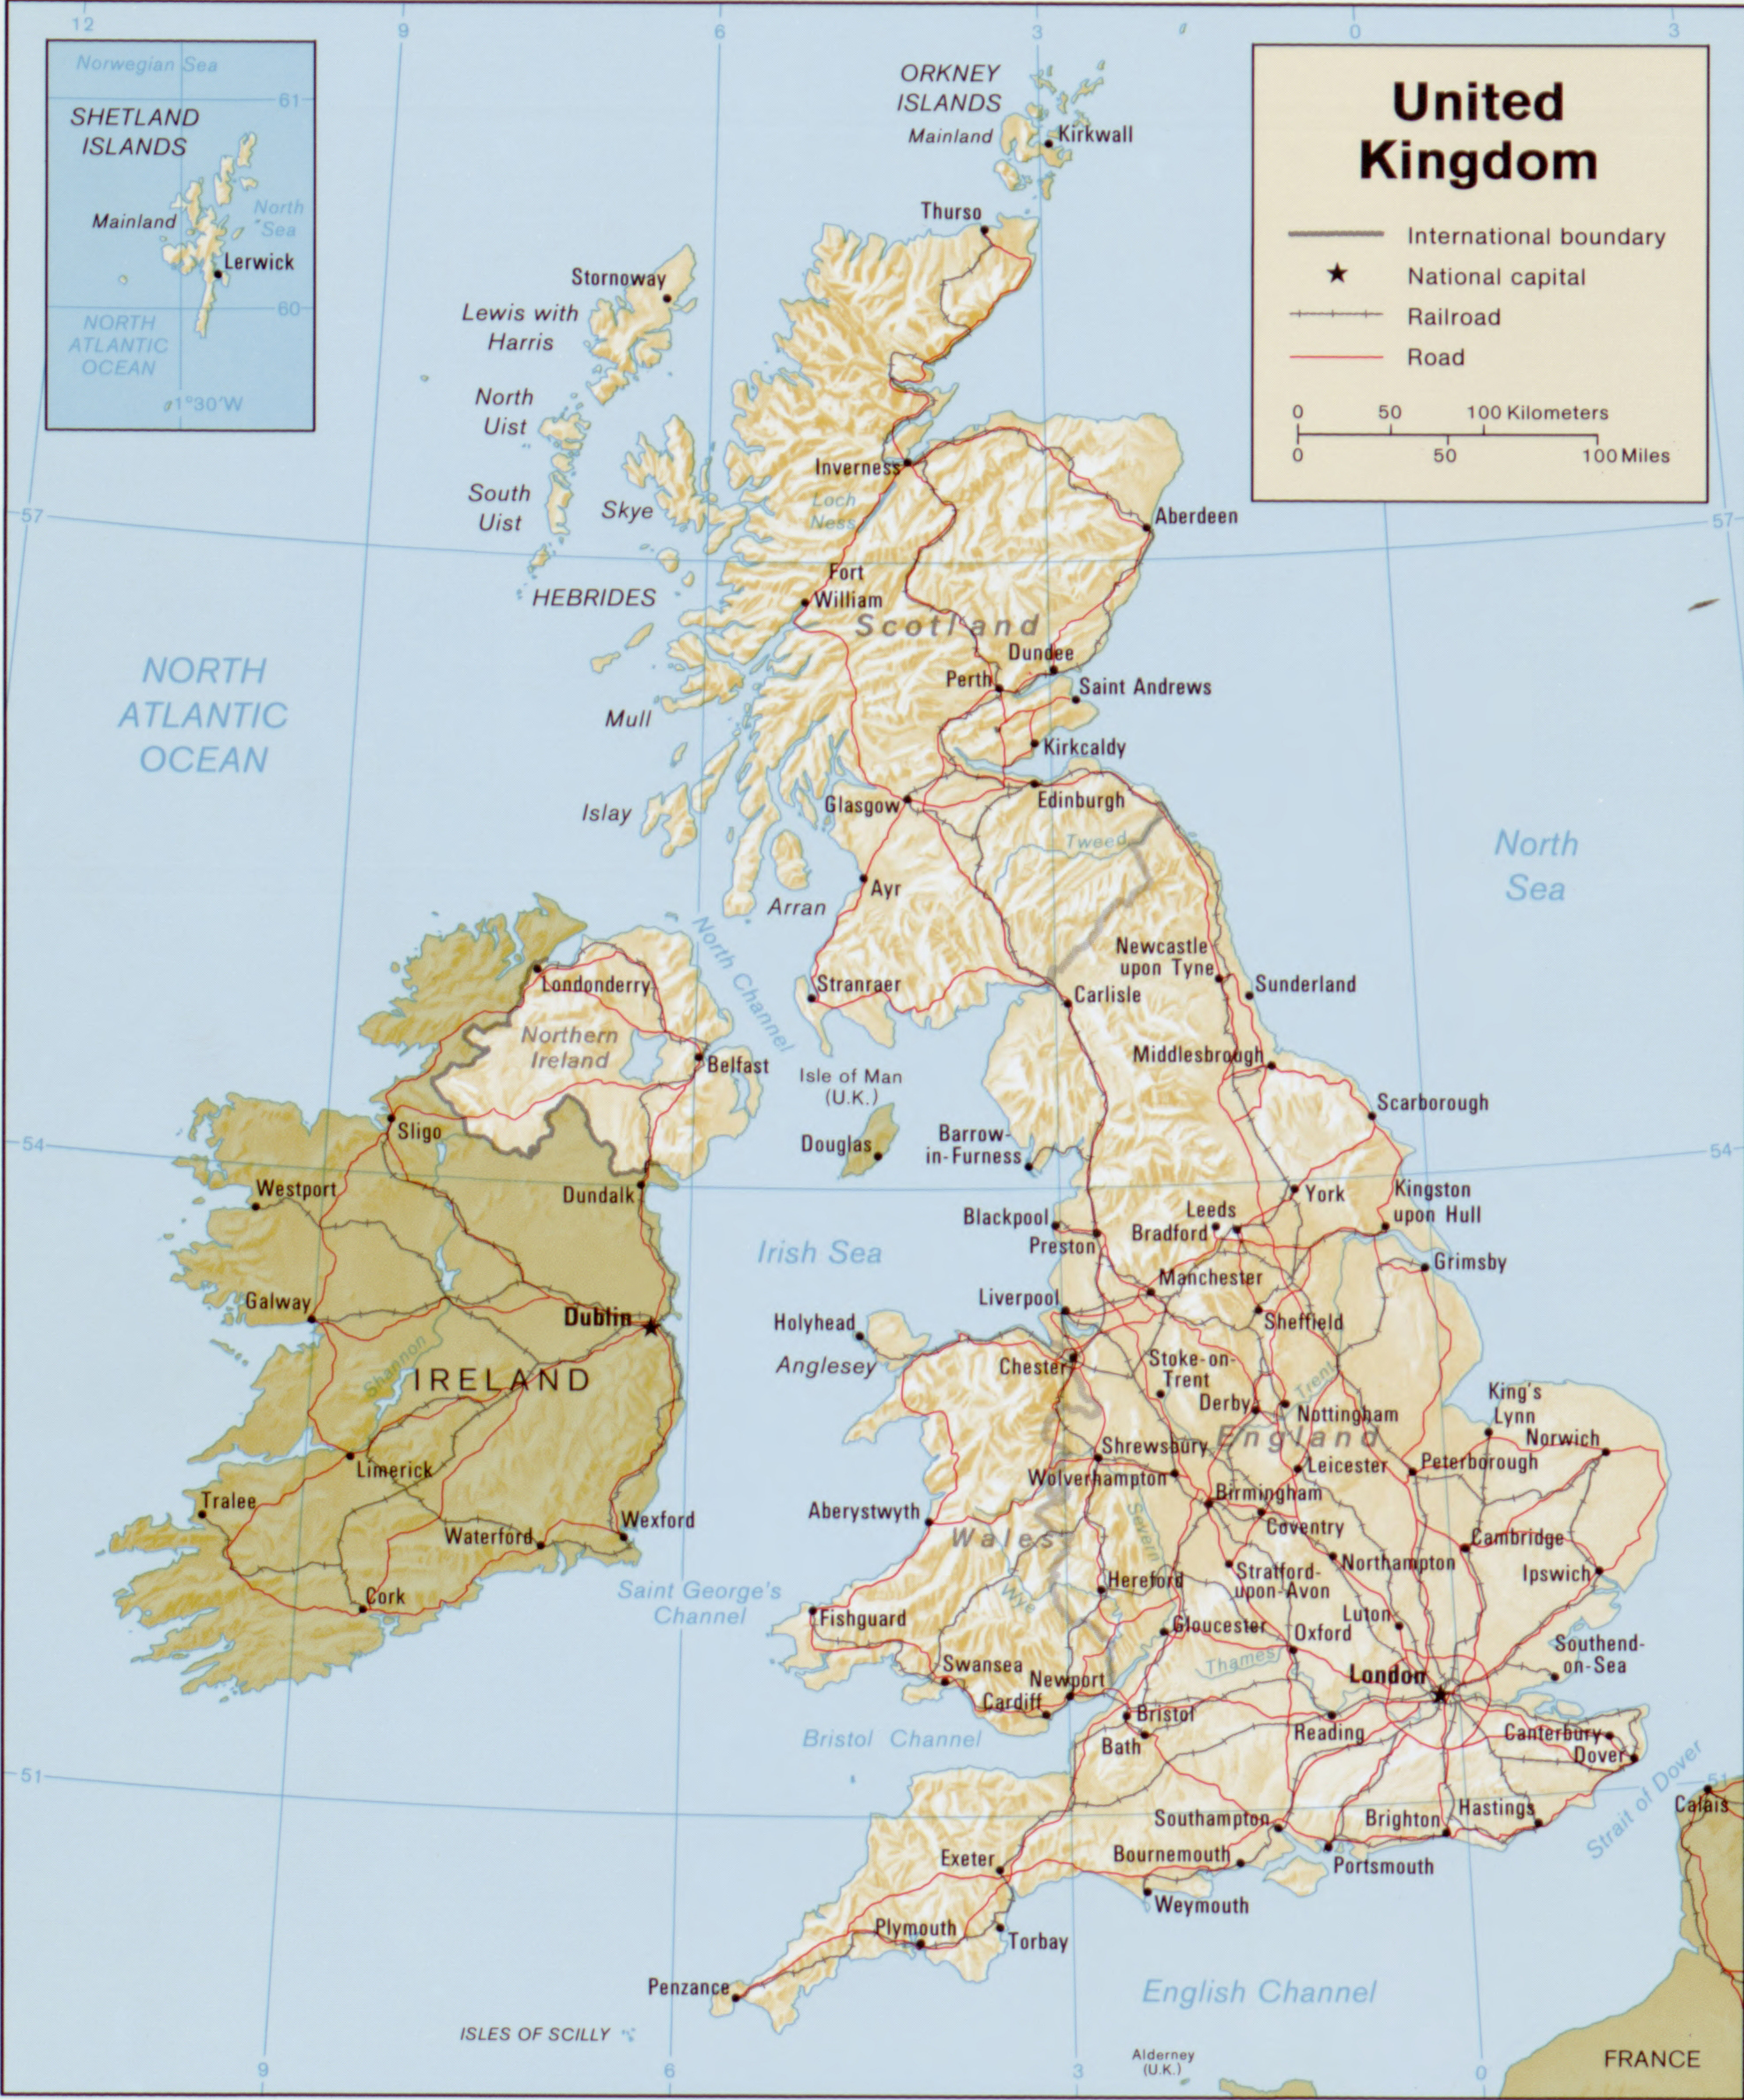 Map of the british isles united kingdom 1987 map of the british isles 1987 united kingdom gumiabroncs